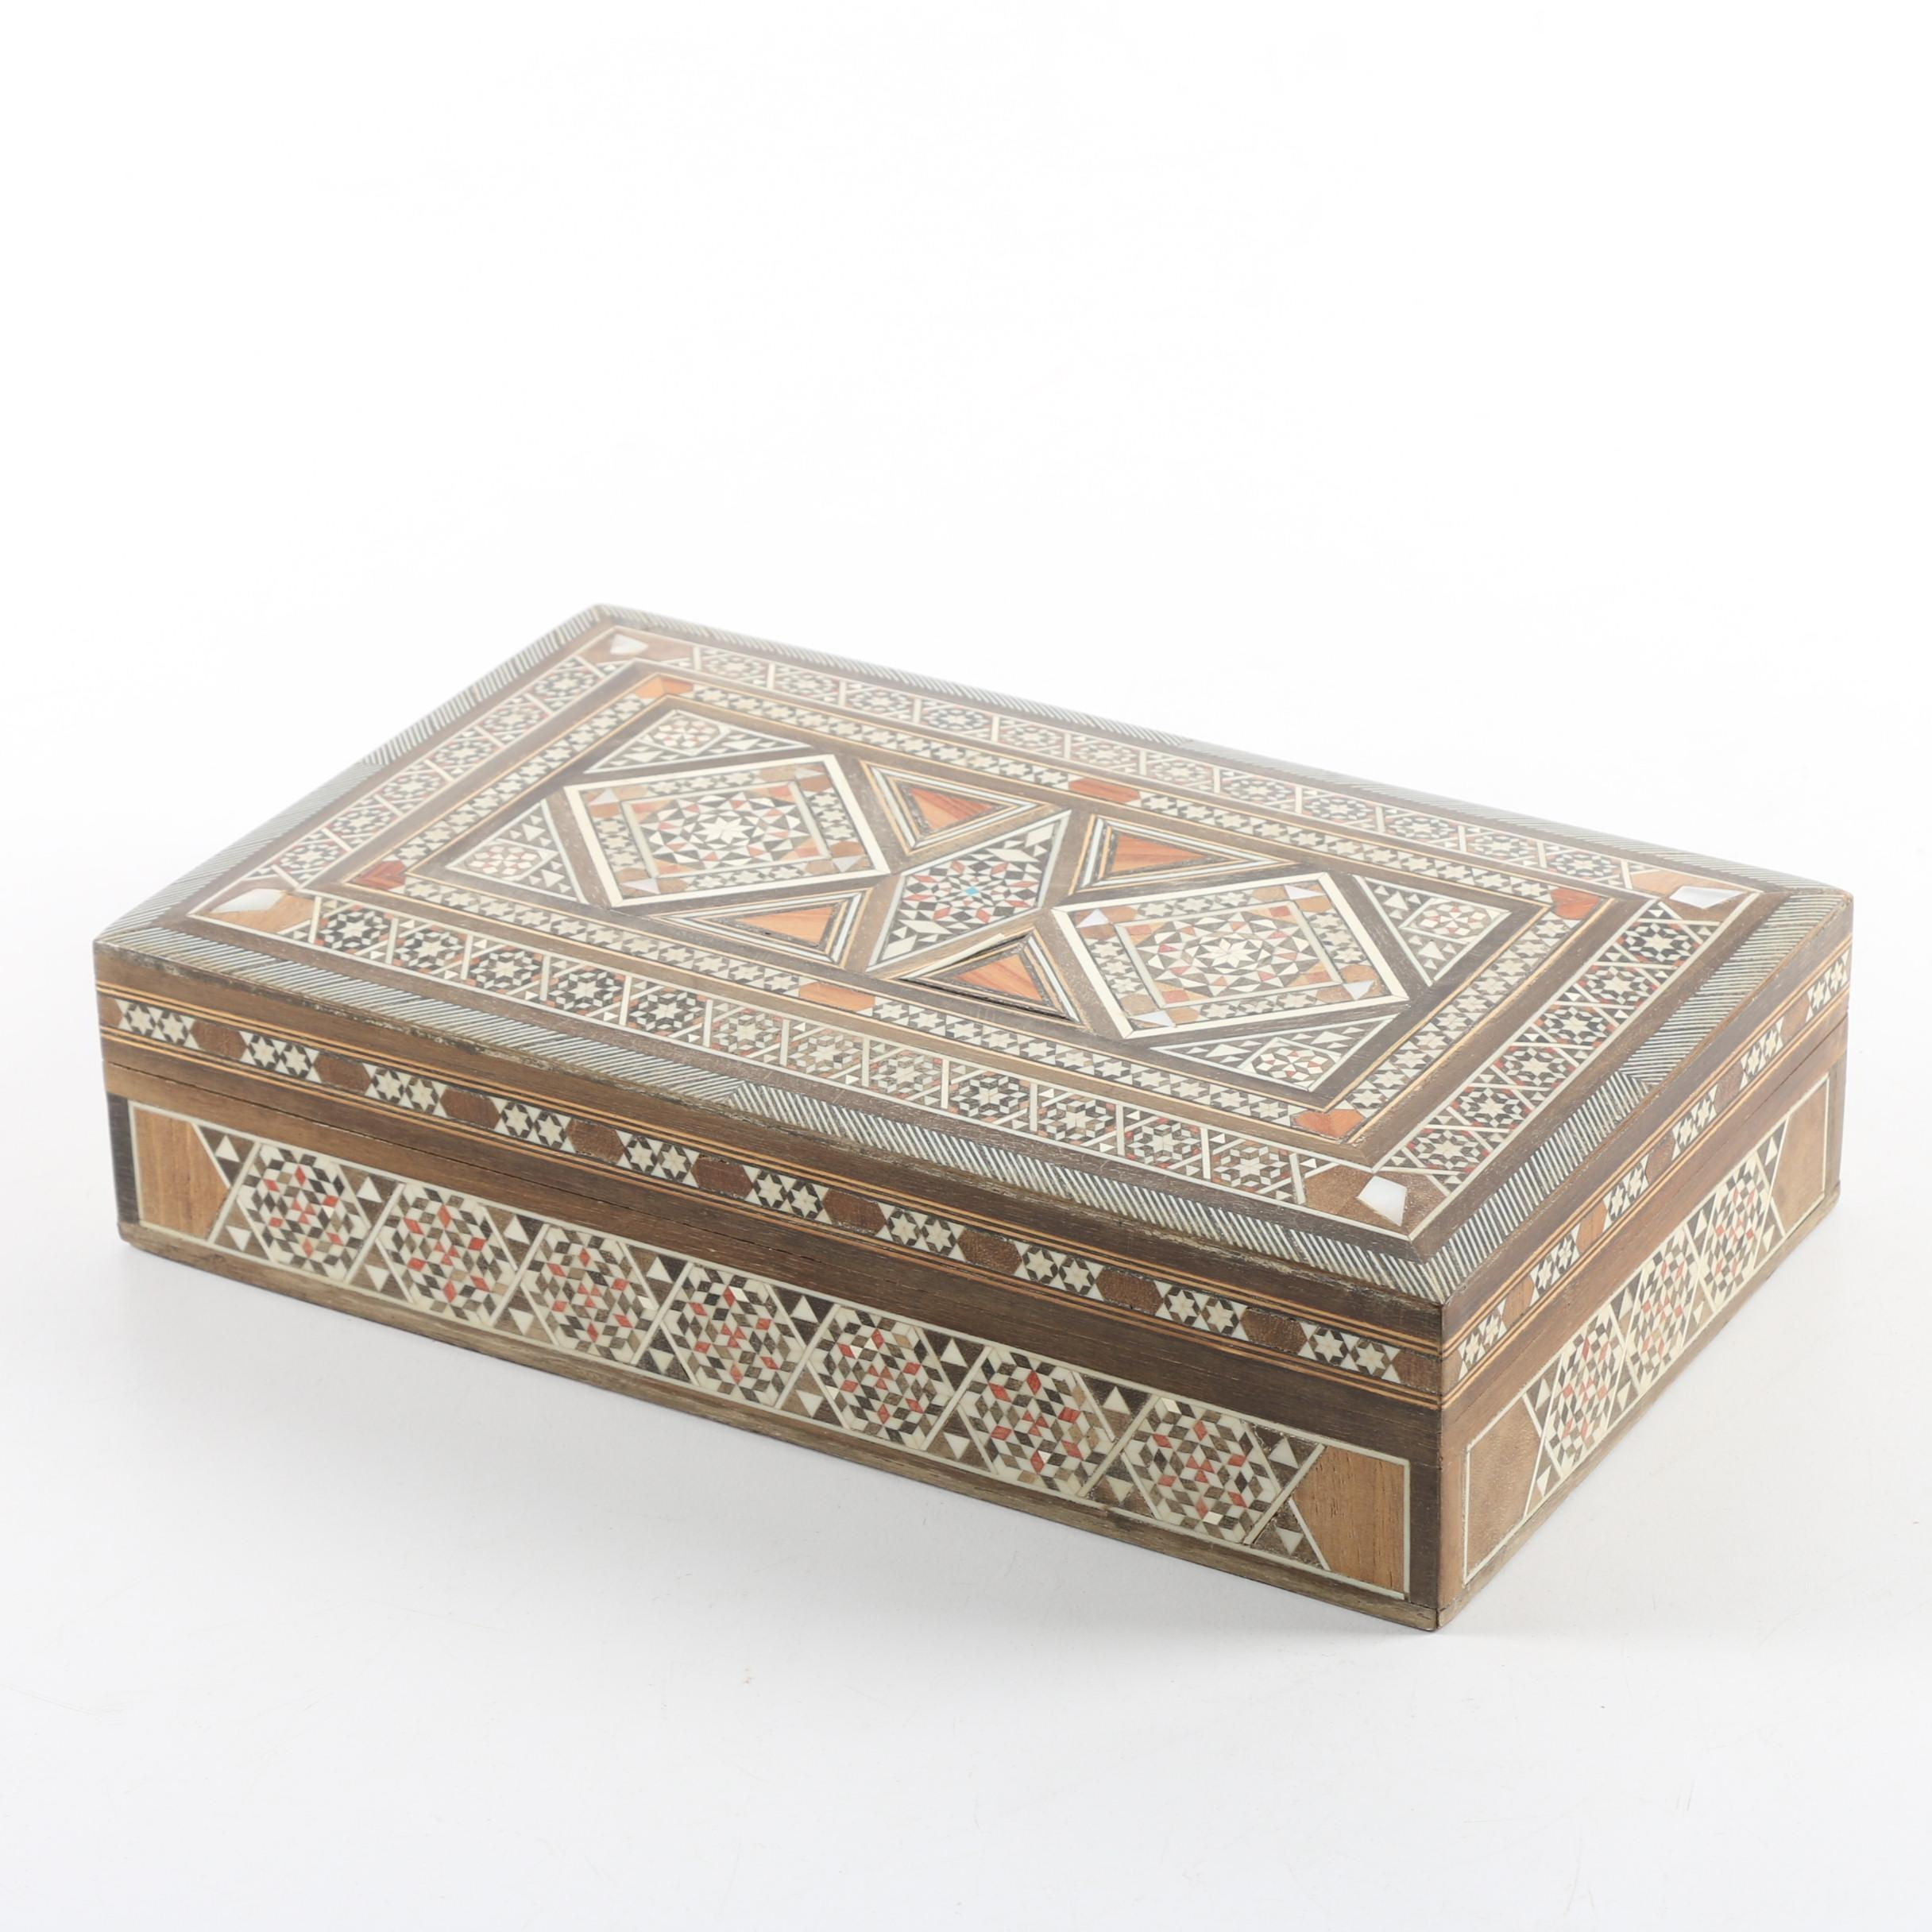 Marquetry Trinket Box with Inlaid Mother of Pearl and Antler